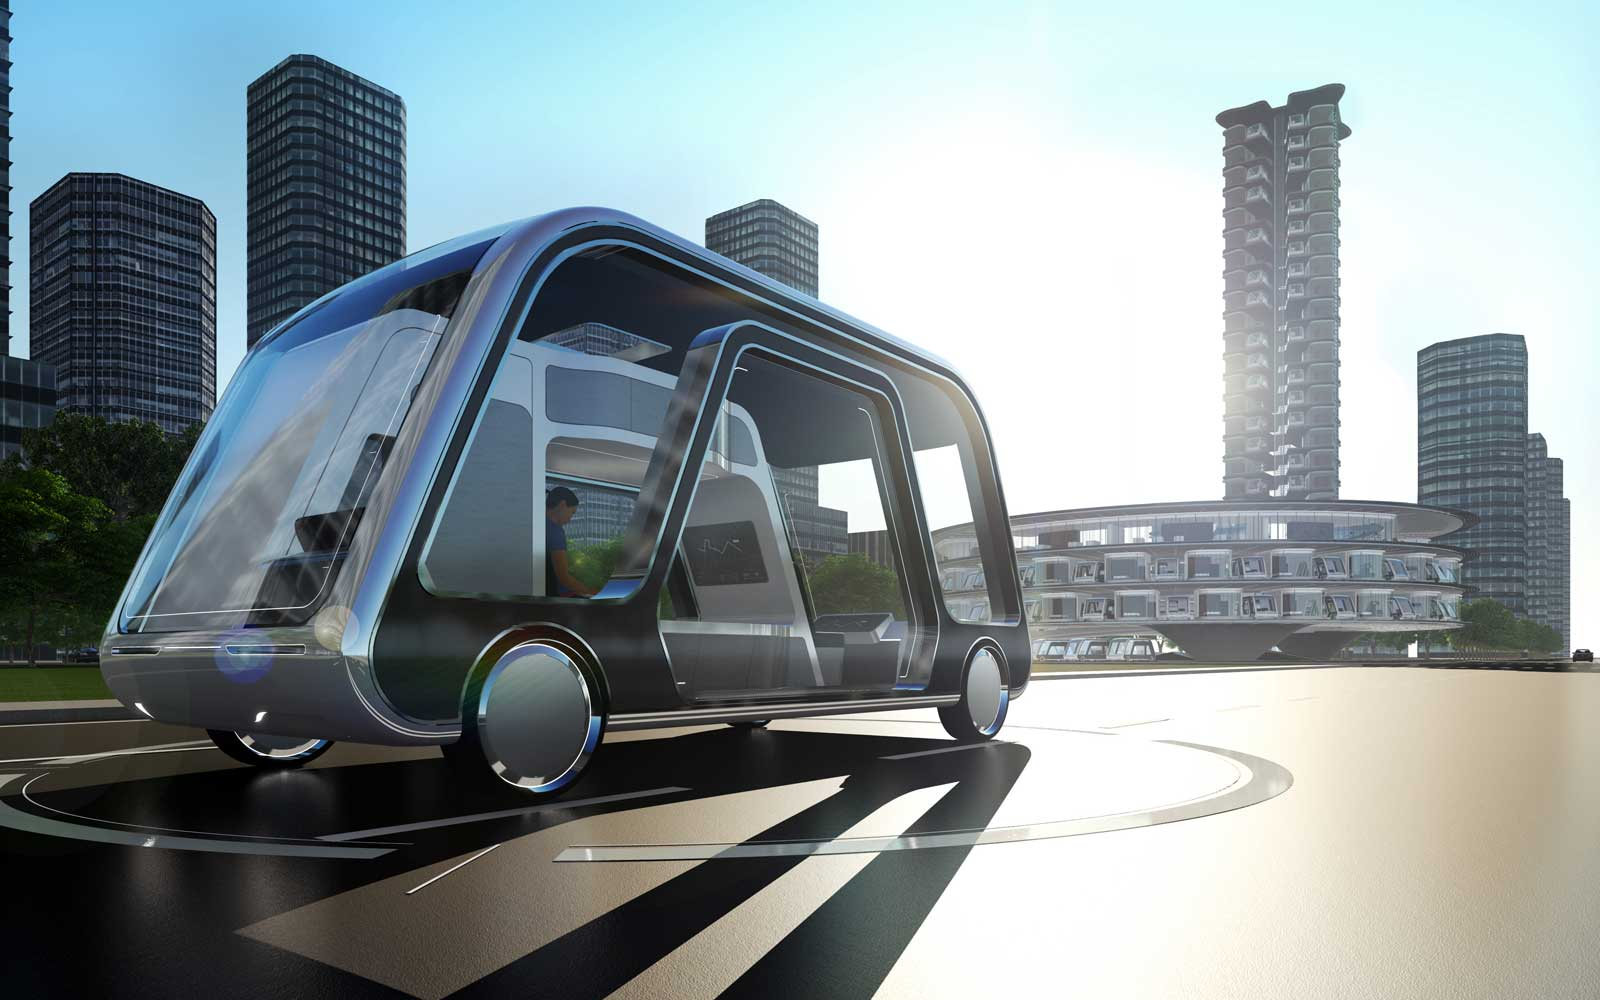 Self-driving Hotel Rooms May Soon Change the Way We Take Road Trips